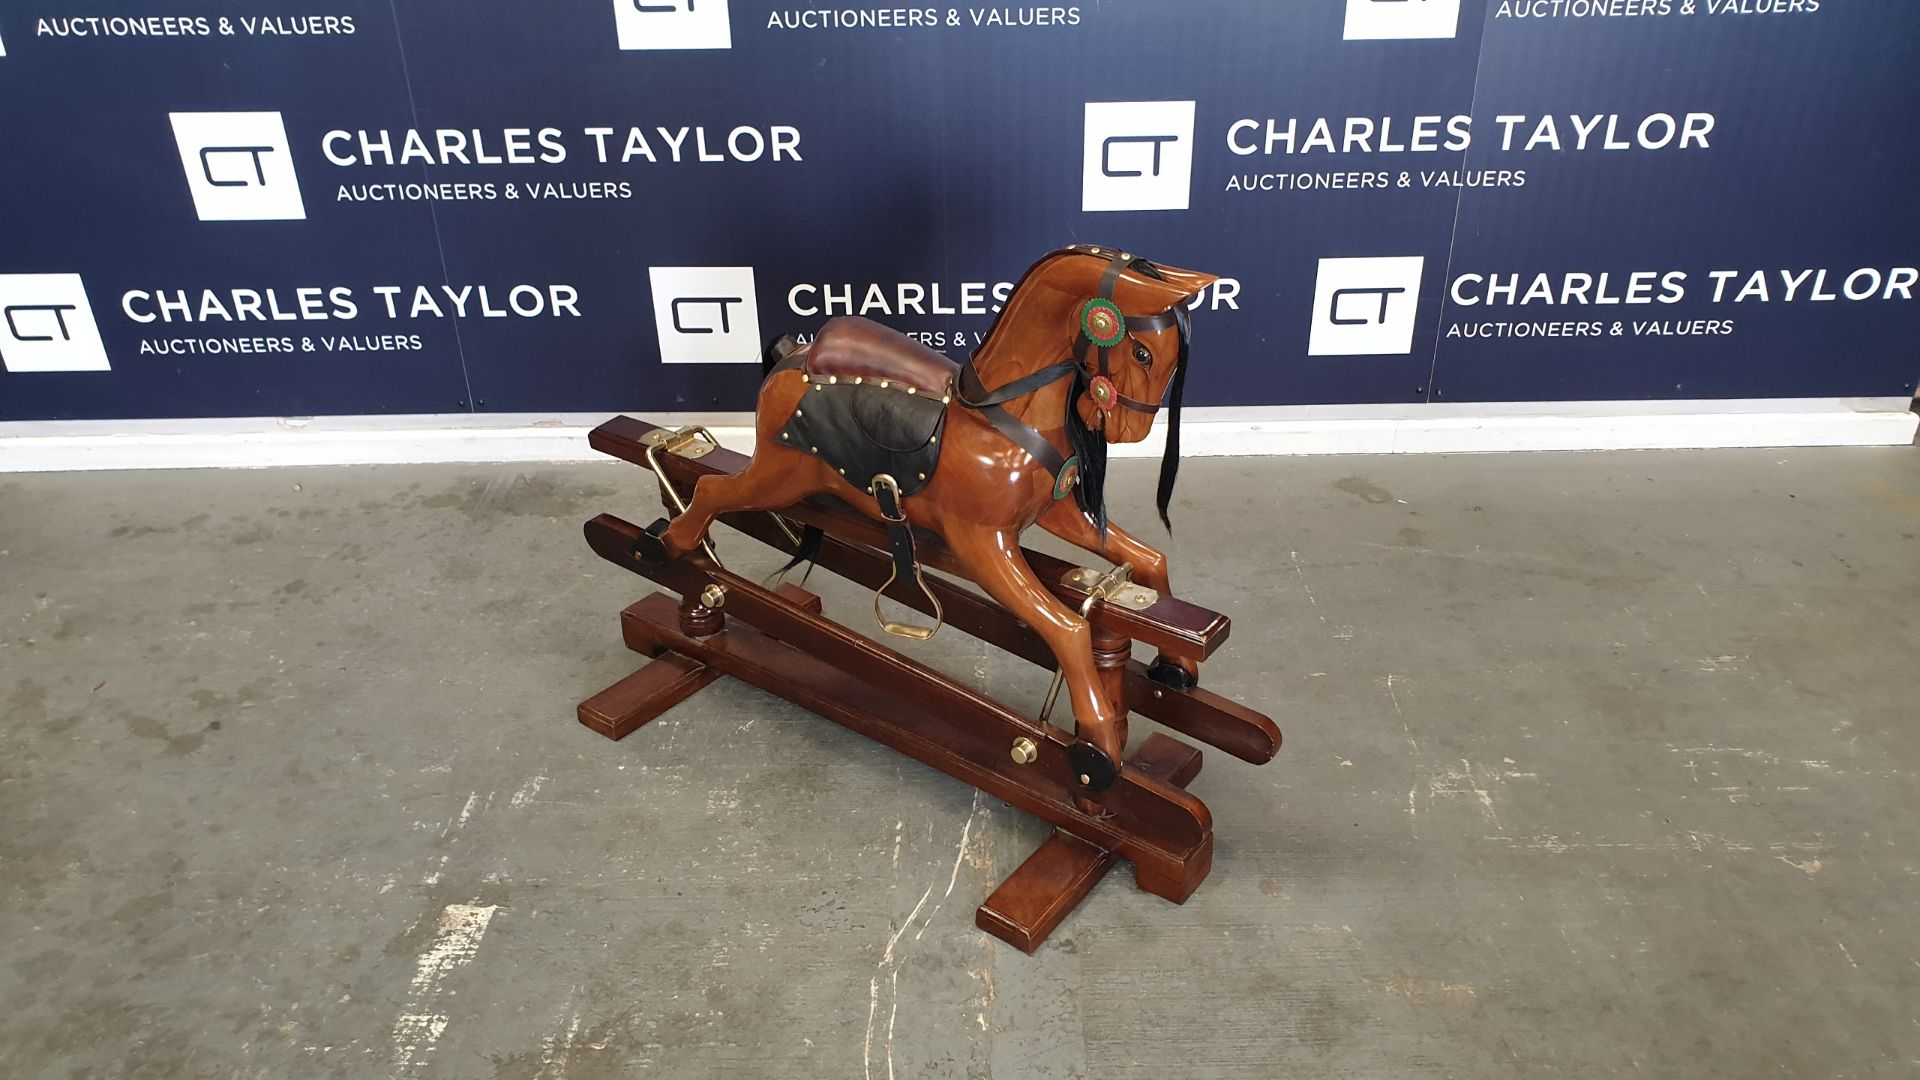 Lot 13 - BRAND NEW SOLID WOODEN MAHOGANY ROCKING HORSE 110 X 45 X 90cm RRP £1000